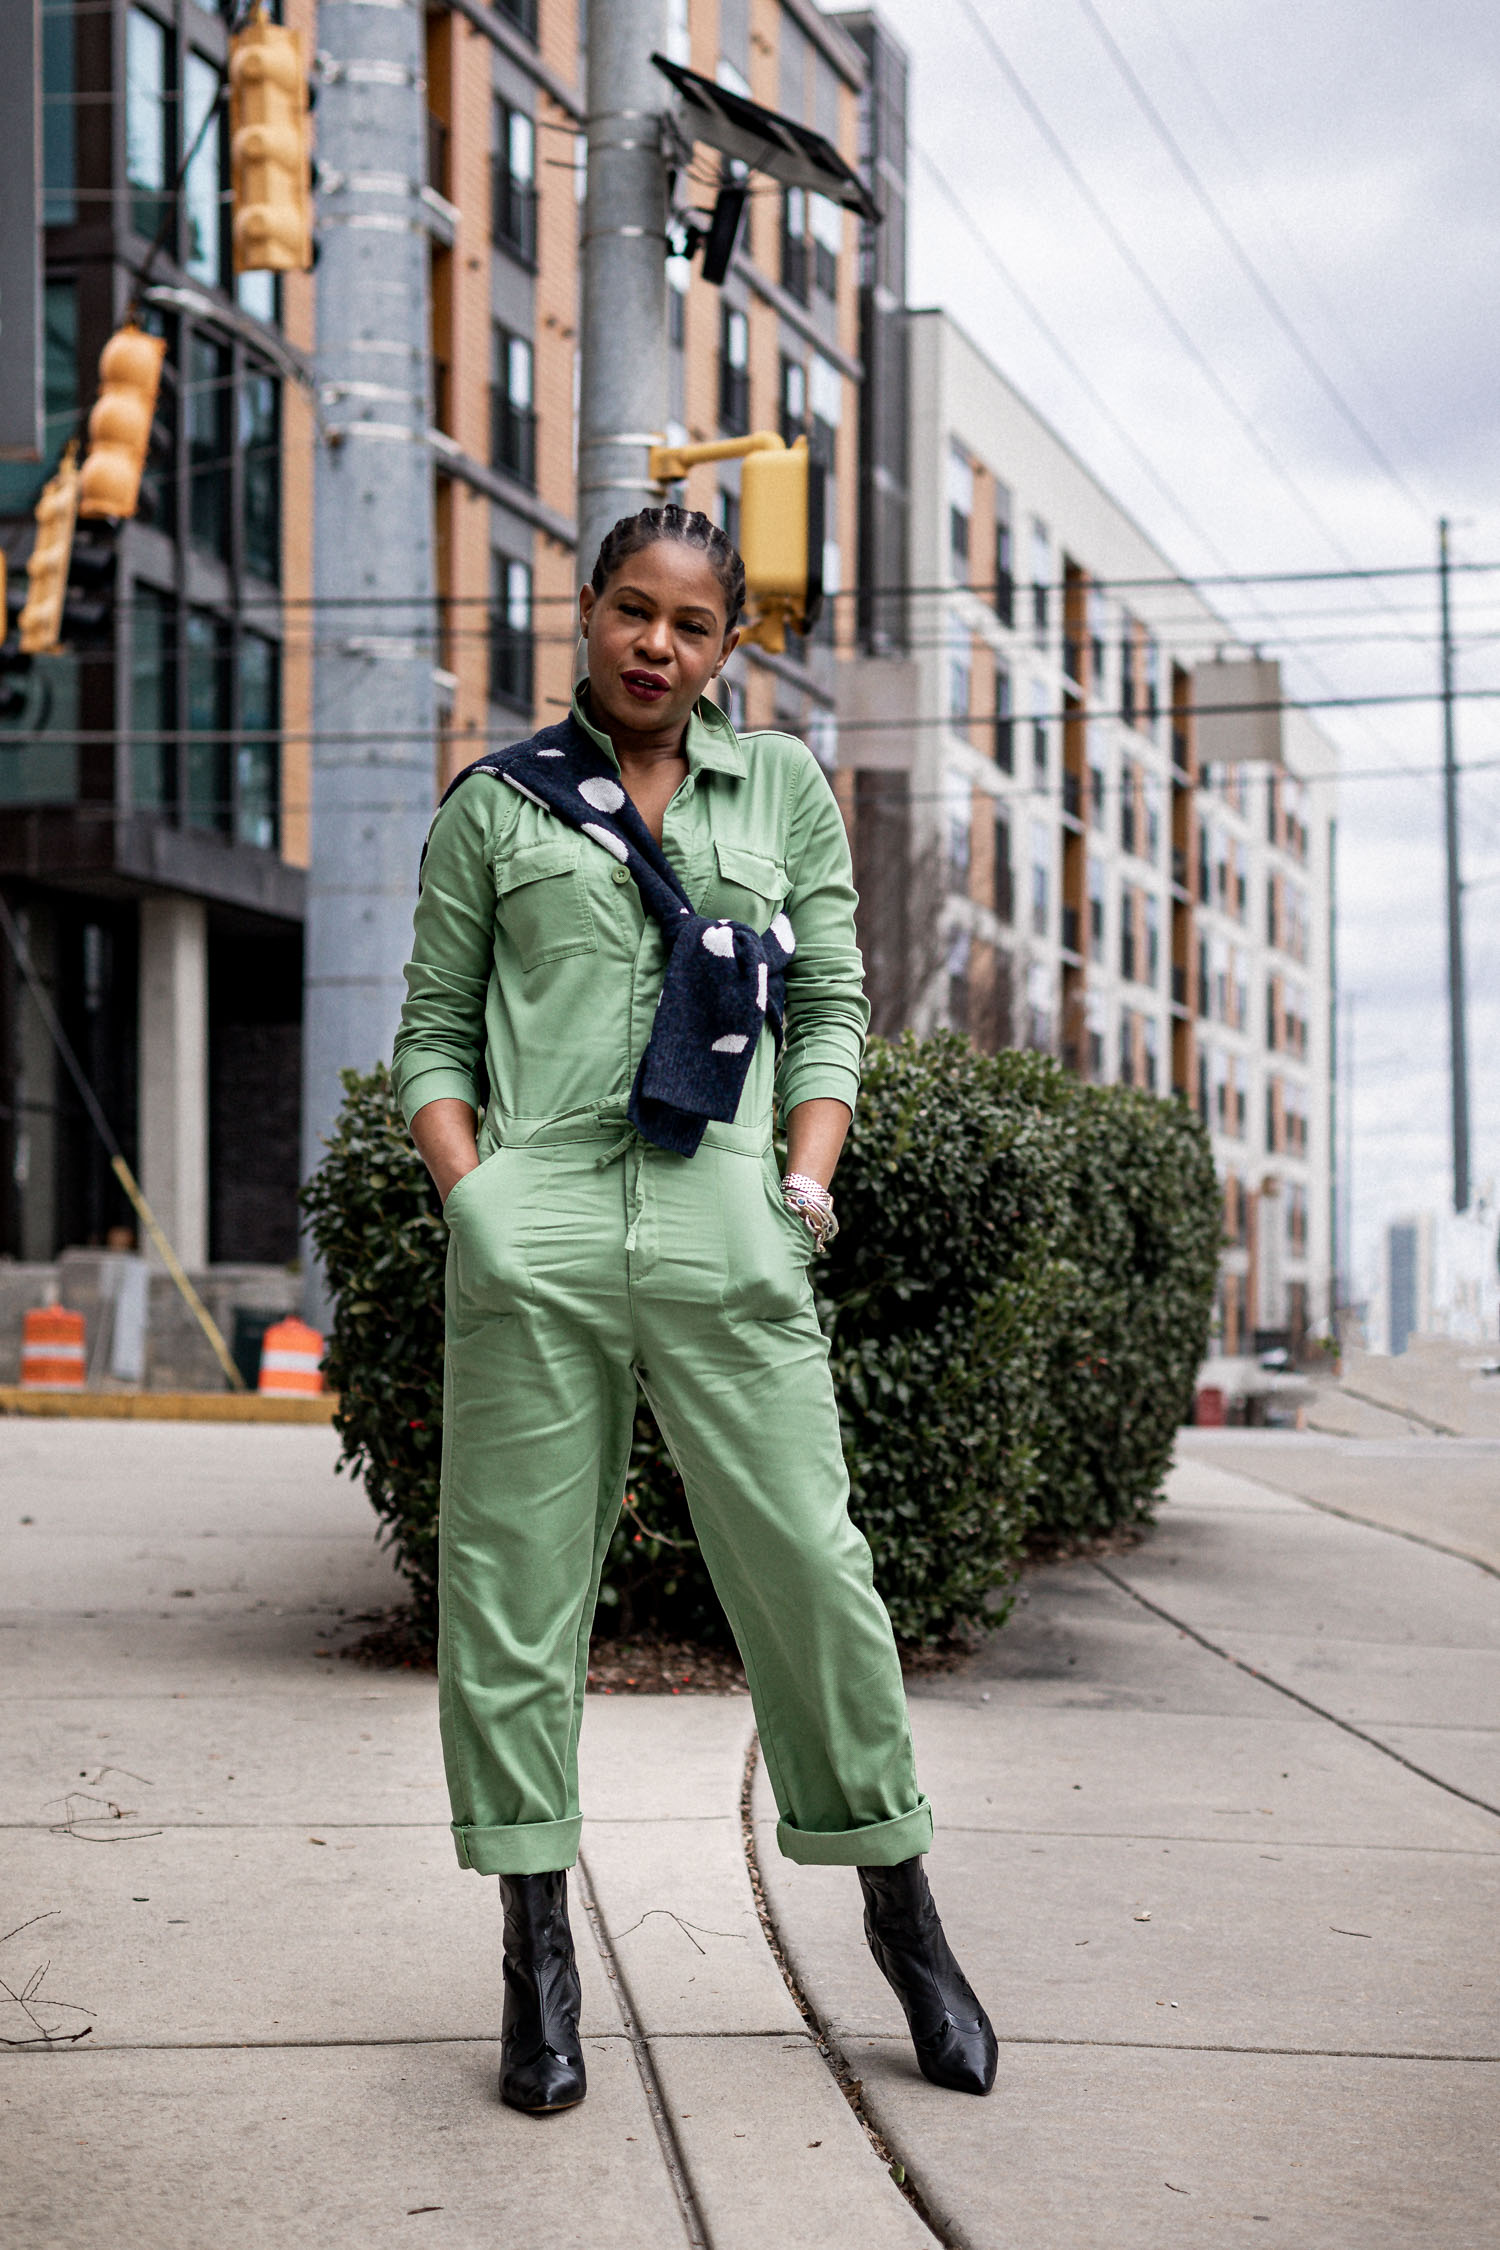 atlanta blogger monica awe-etuk wearing scoop at walmart green jumpsuit, walmart, scoop walmart, scoop, 2020 spring trends, how to wear spring trends, top spring trends for 2020, how to style pastel colors in cold weather , how to wear spring trends in cold weather, pastel colors, 2020 spring fashion, jumpsuit, green jumpsuit, how to wear a jumpsuit in cold weather, how to style a jumpsuit for spring, how to style a jumpsuit with boots, layering a jumpsuit